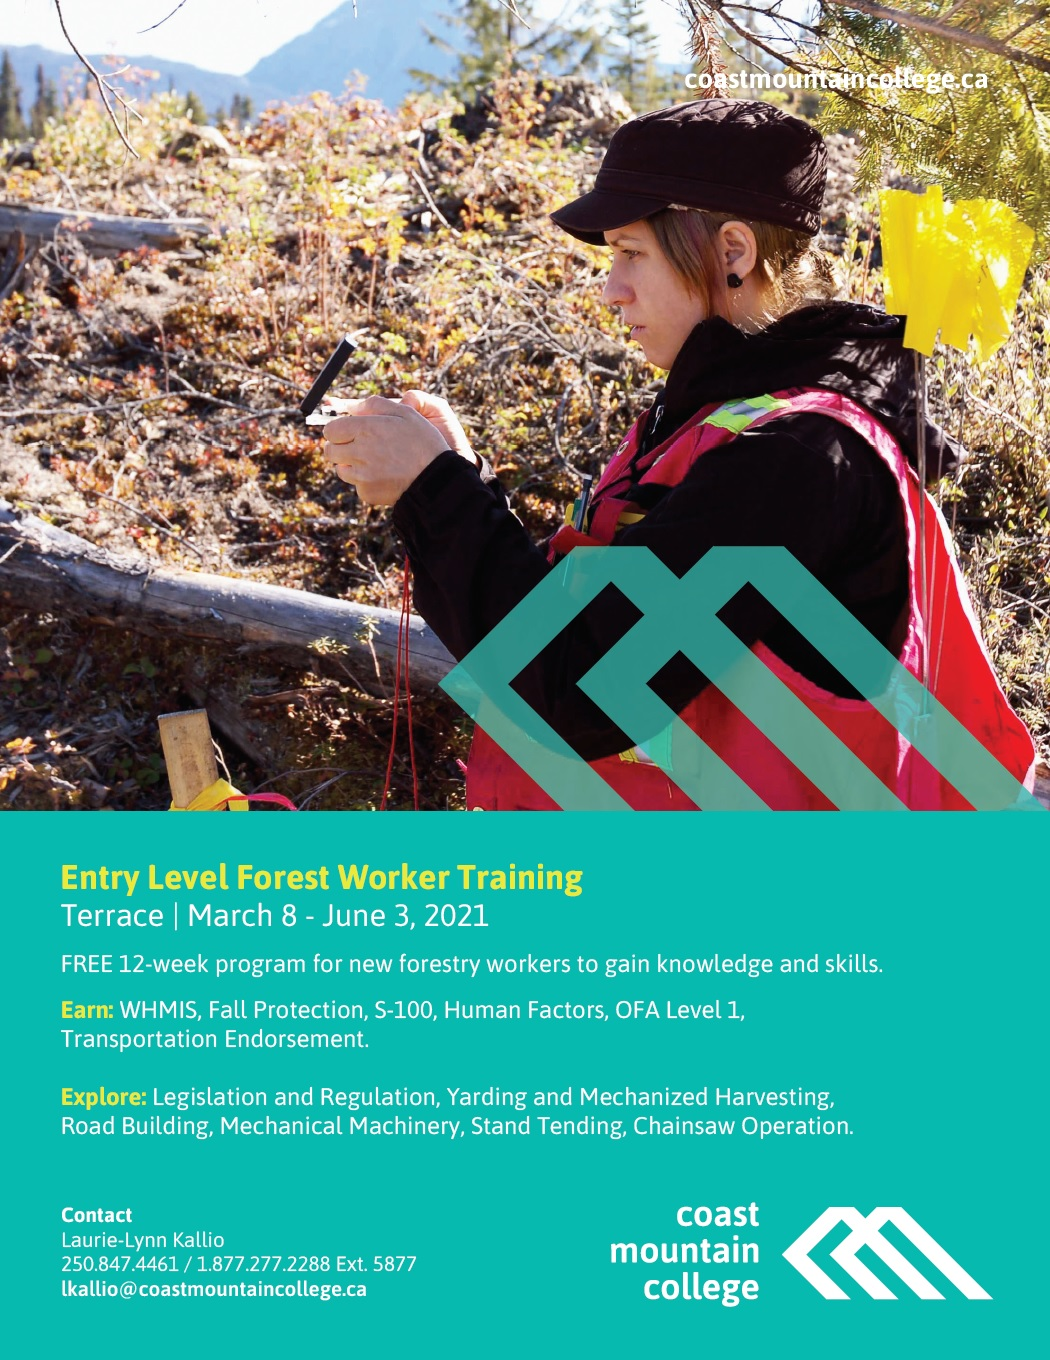 Entry Level Forest Worker Training CMC